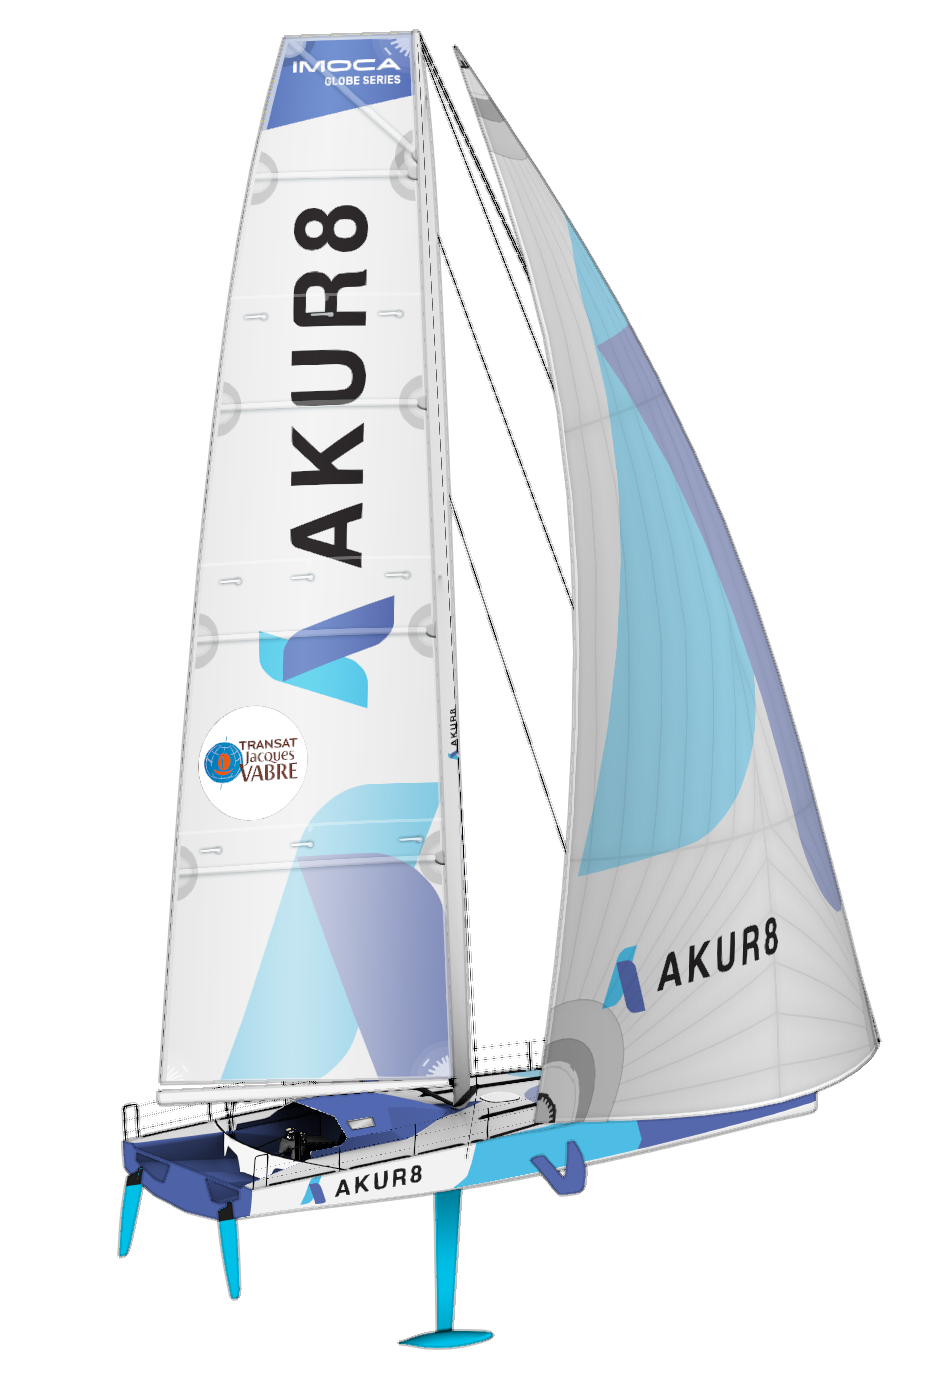 the IMOCA Akur8 for the Virtual Regata. A boat with a  white and blue sail